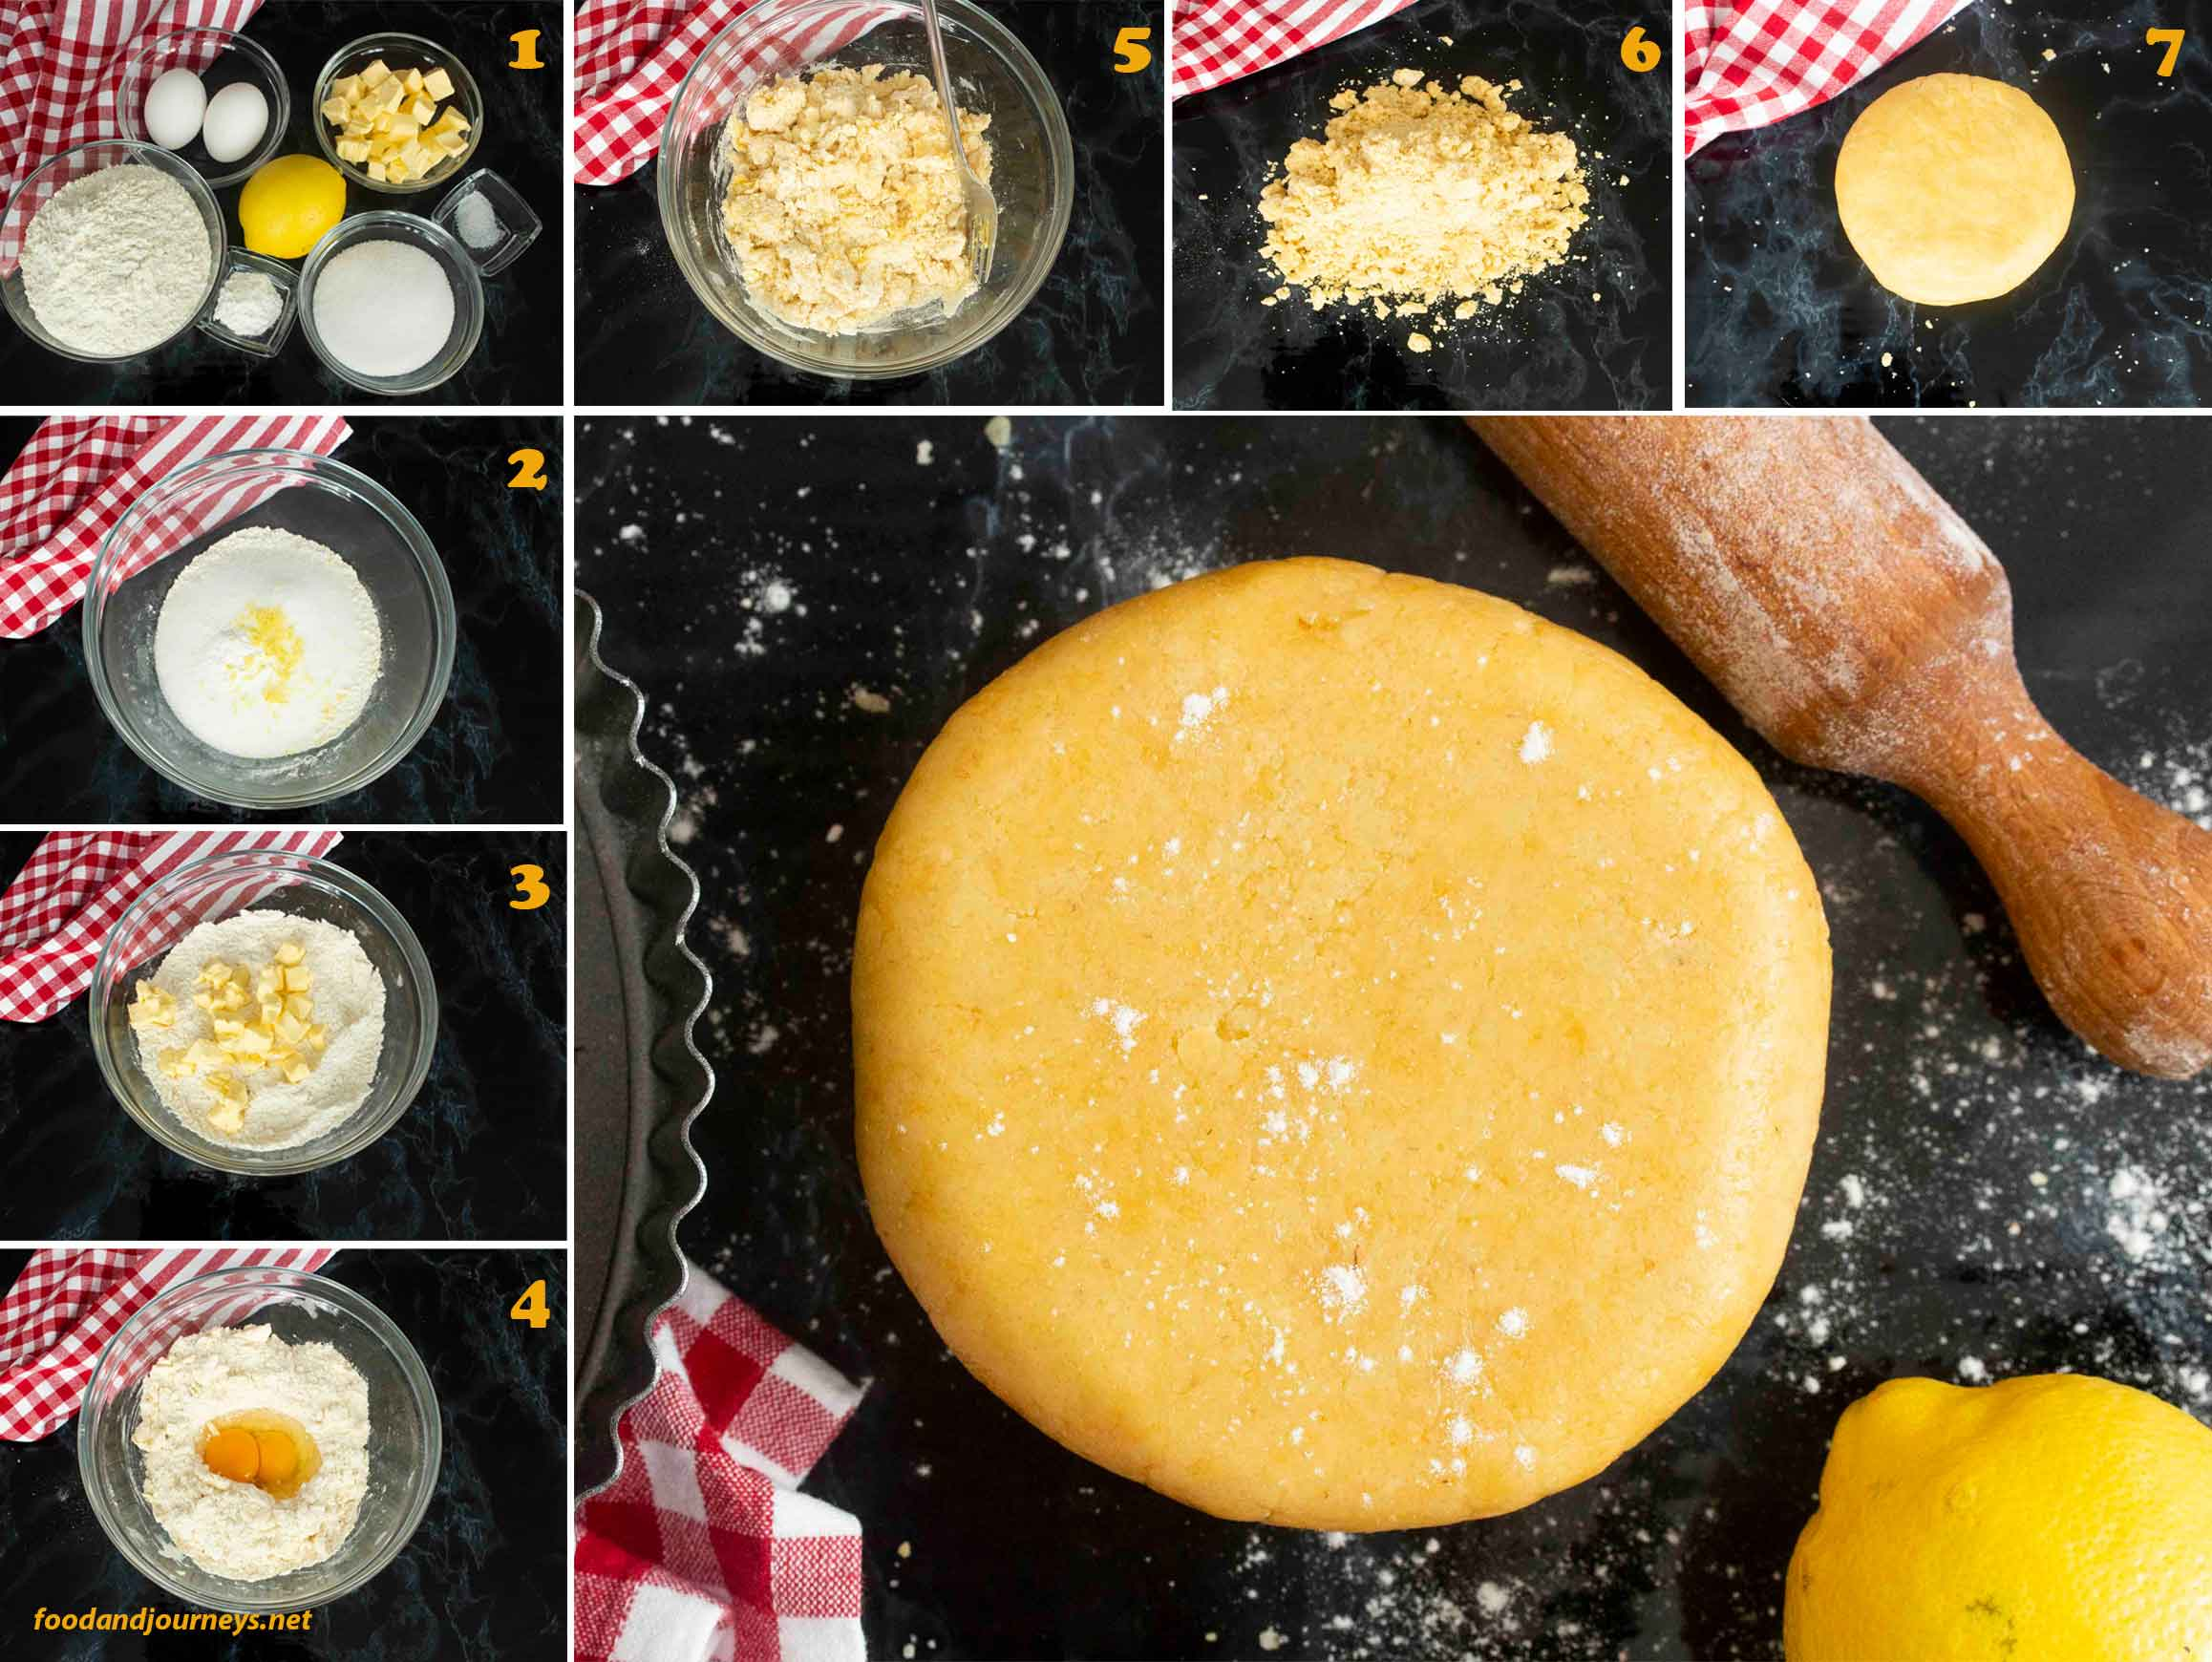 Collage of images showing step by step process on how to make Pasta Frolla, (Italian Sweet Pastry Dough) by hand.